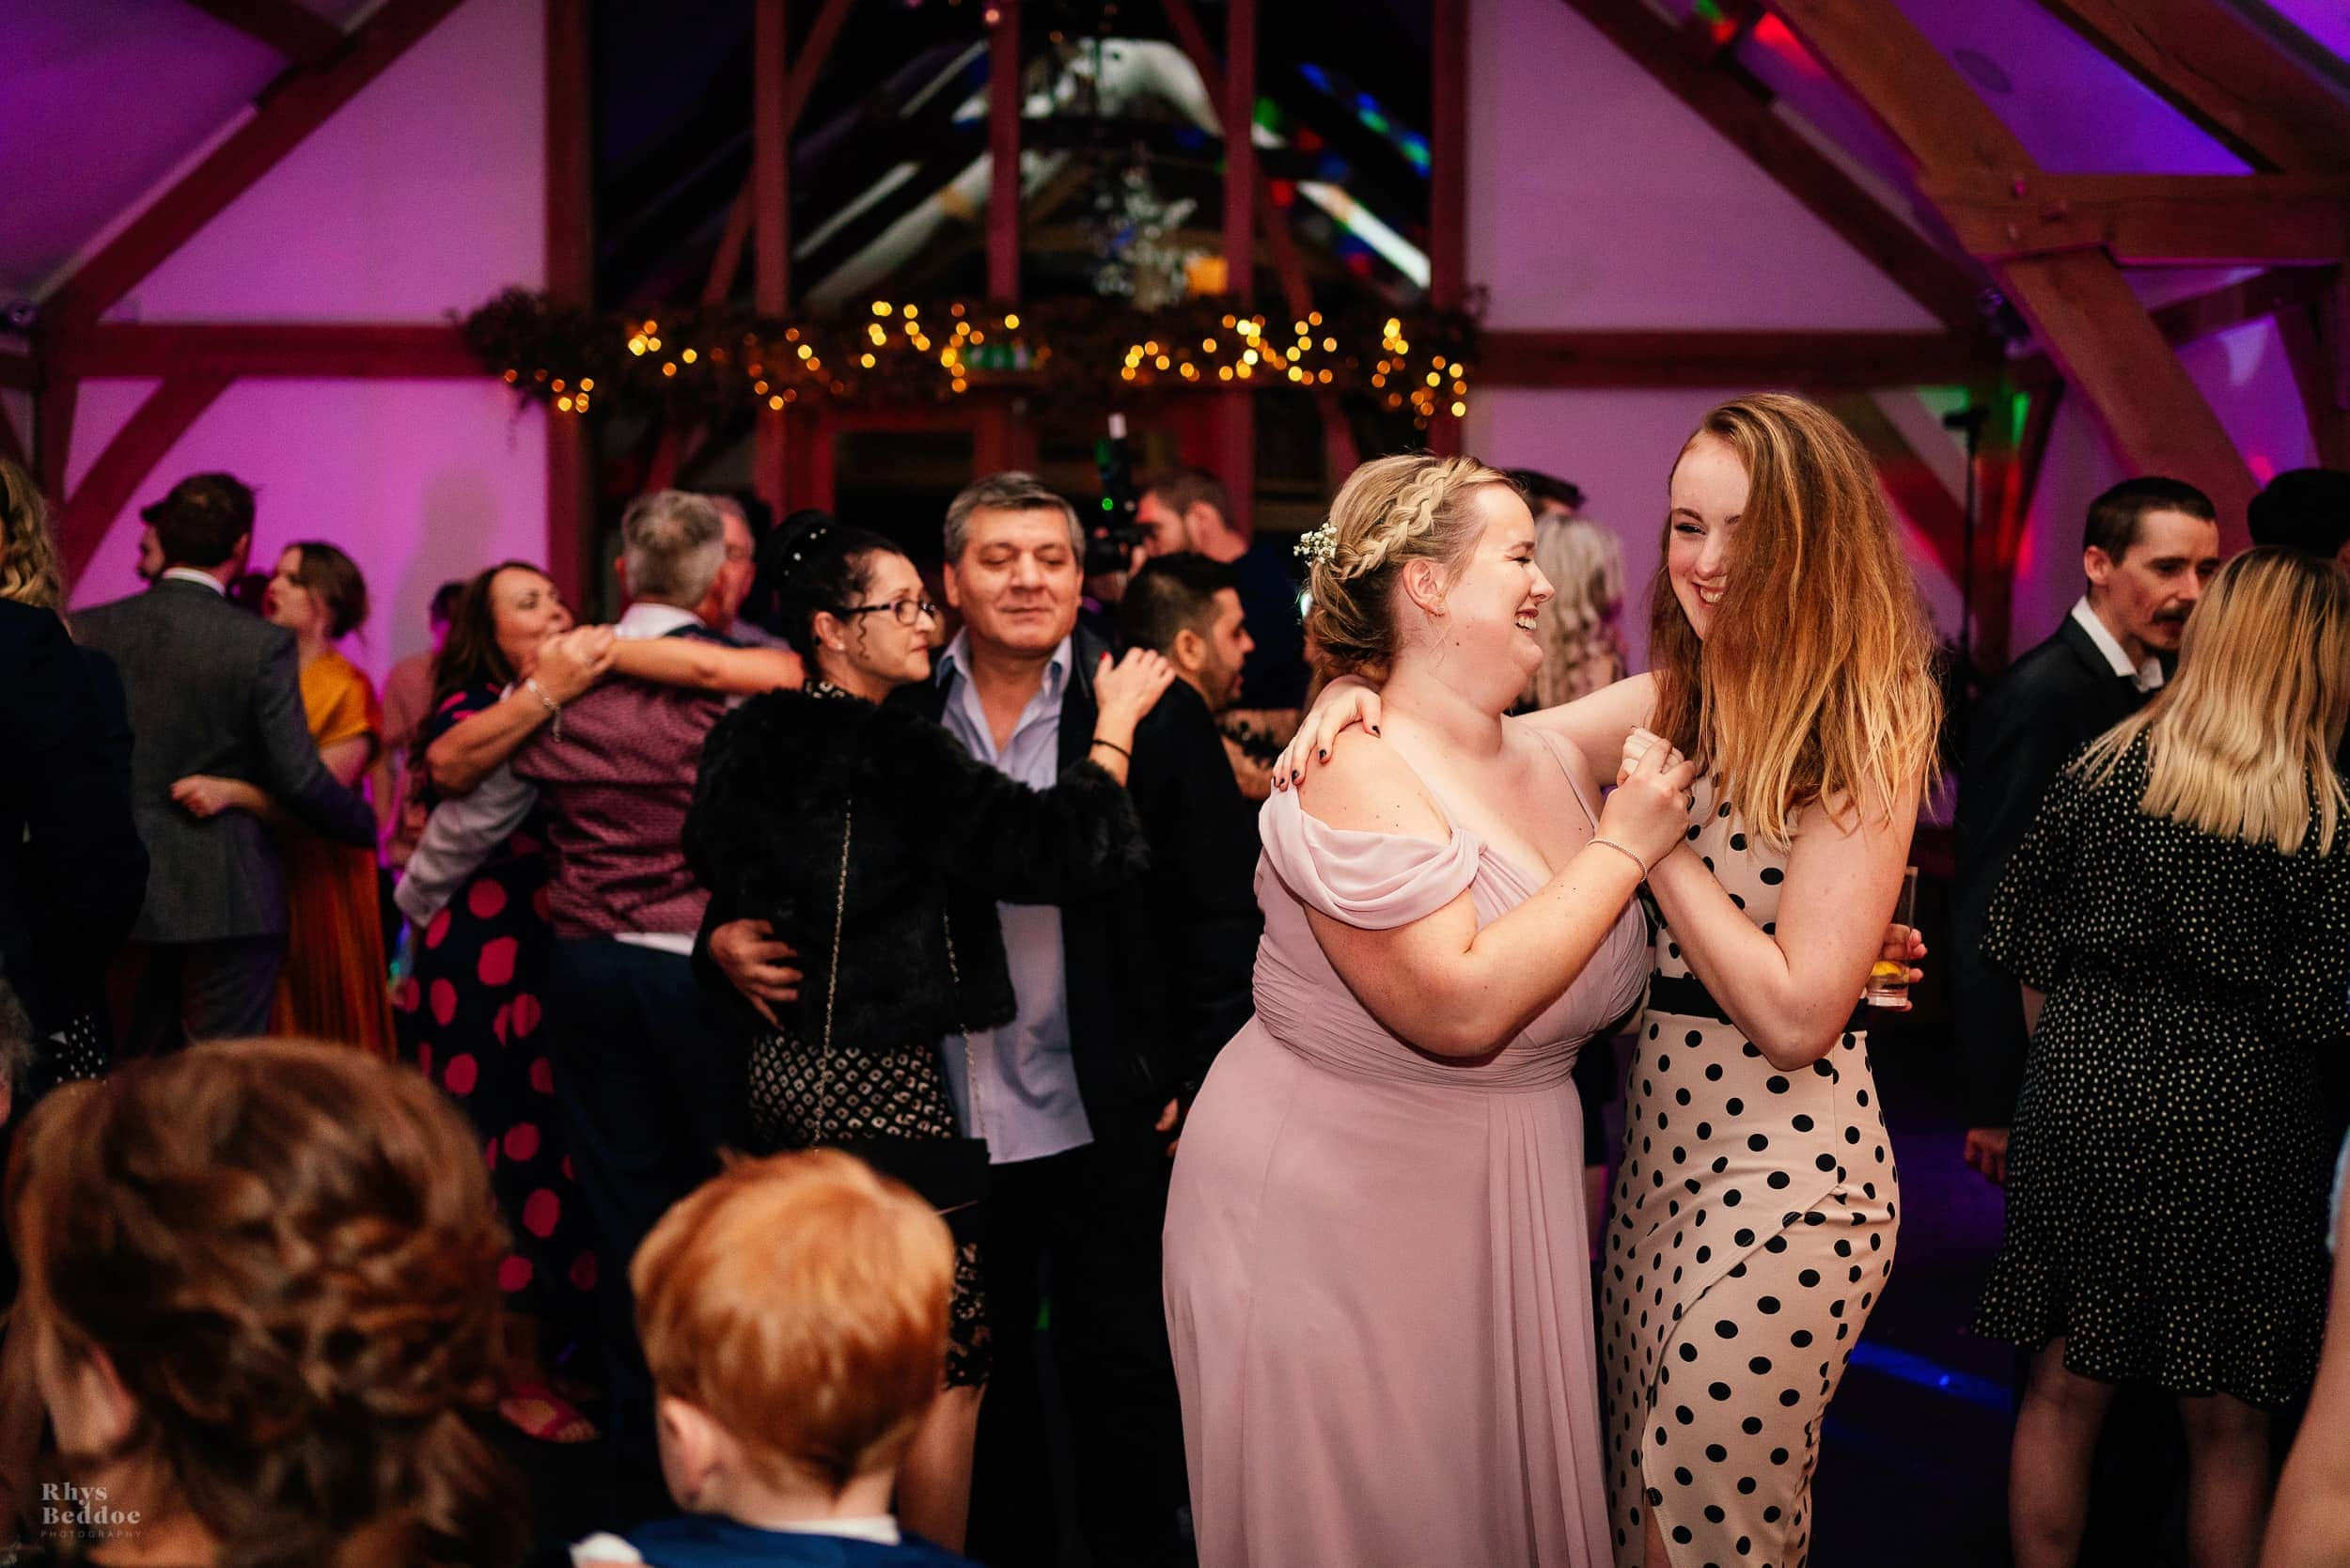 Dancing captured by myth barn wedding photographer